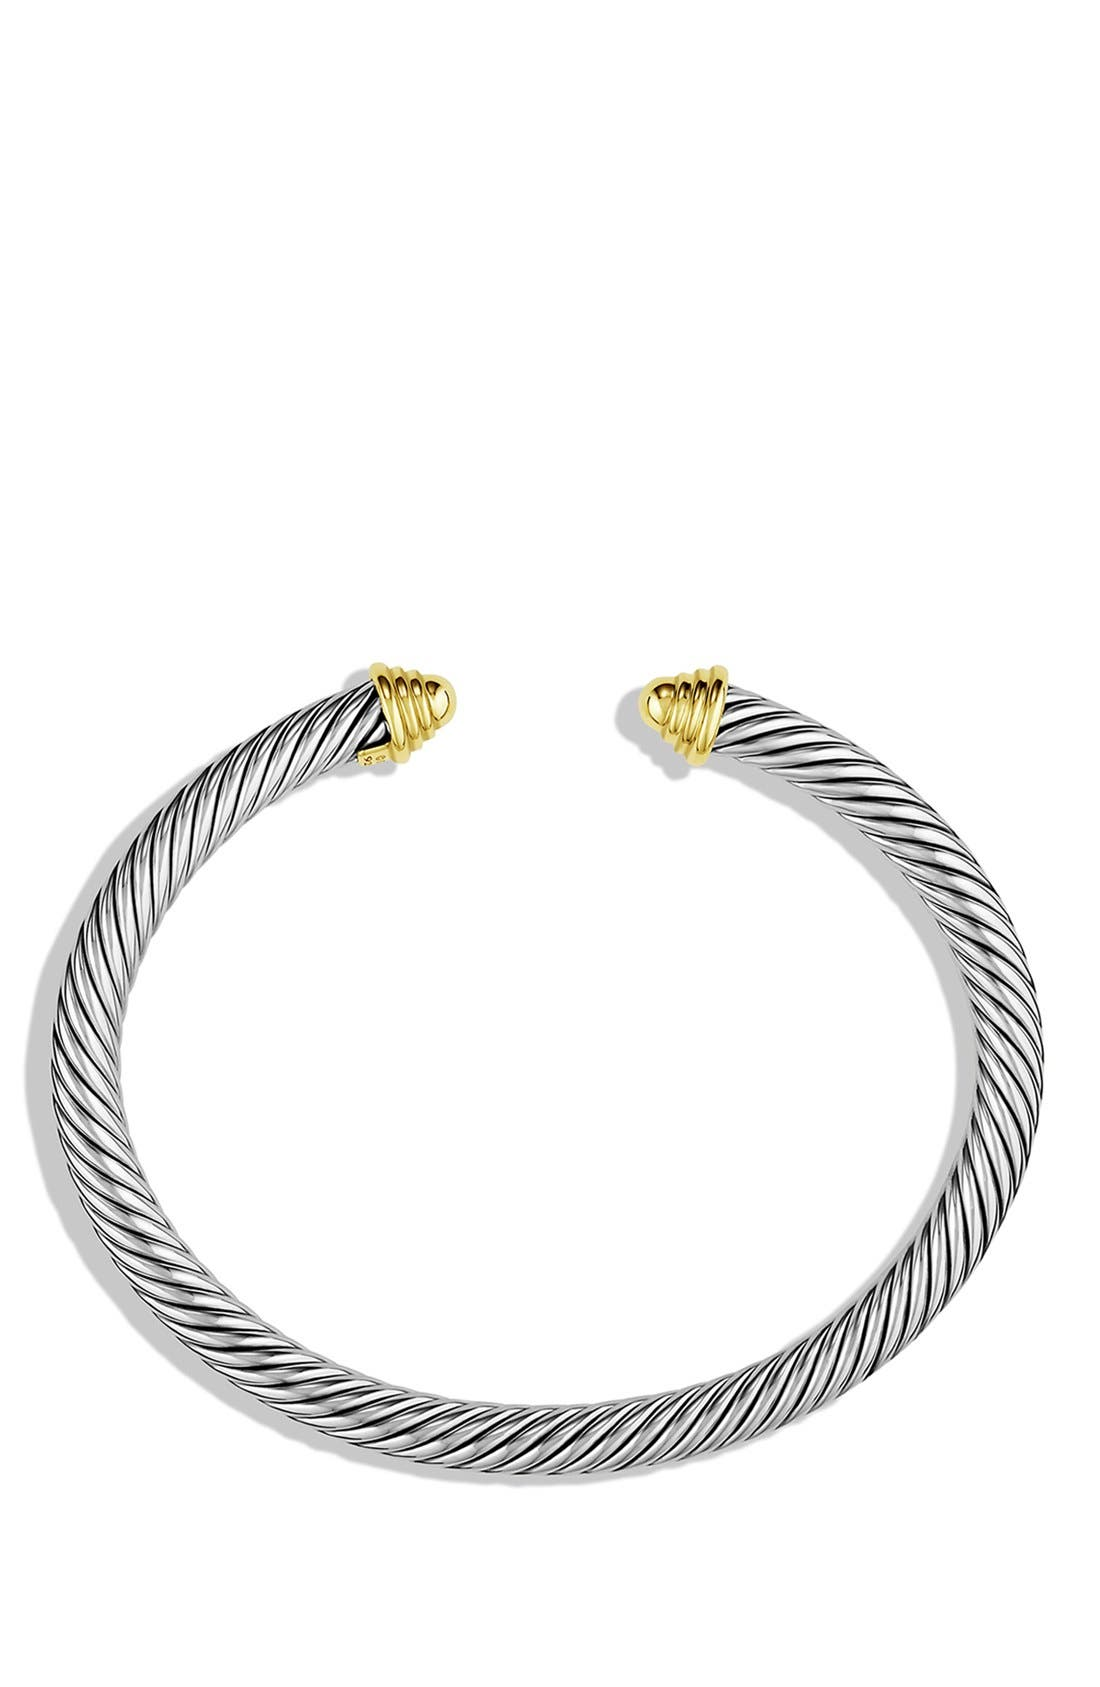 Cable Classics Bracelet with 14K Gold, 5mm,                             Alternate thumbnail 2, color,                             TWO TONE